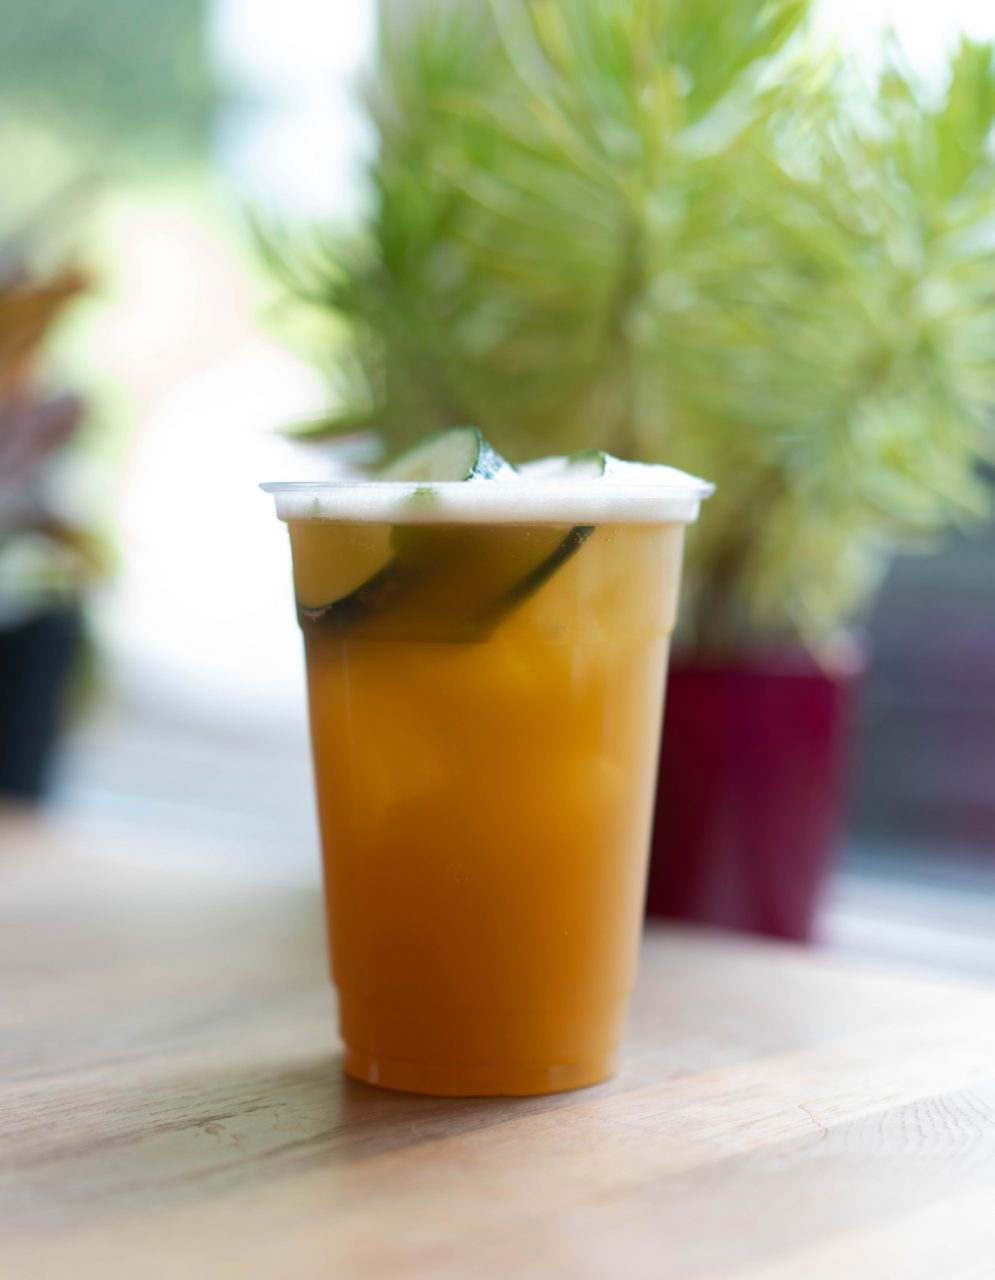 An iced Porch Swing, Hatchet Coffee's version of a summertime chai blended with peach nectar, cucumber and mint. One of four specialty drinks from their Summer Menu, Hatchet Coffee's Porch Swing is perfect for sipping while reading a good book.